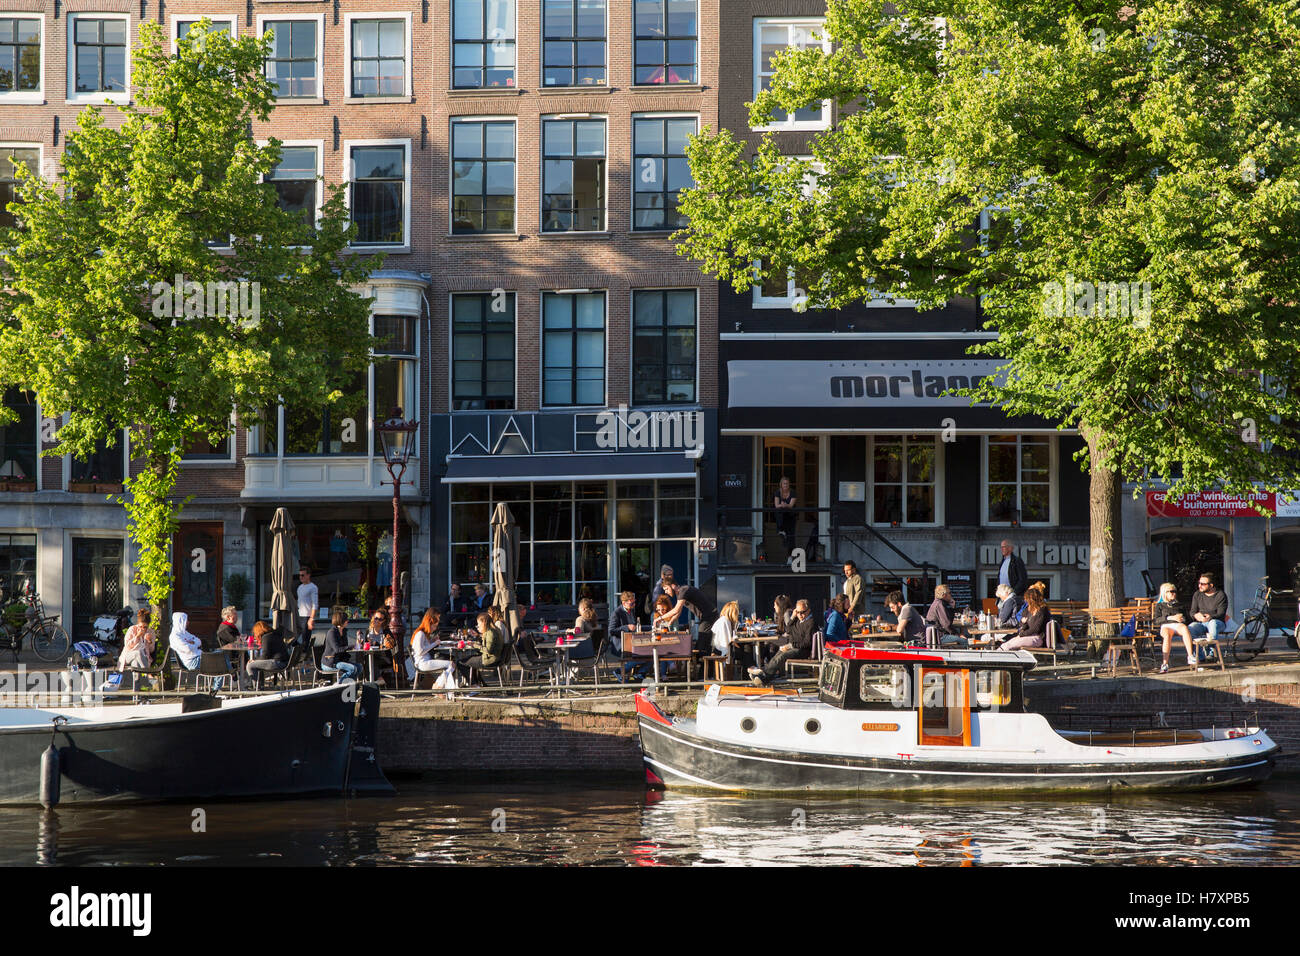 Outdoor cafes on Prinsengracht canal, Amsterdam, Netherlands - Stock Image